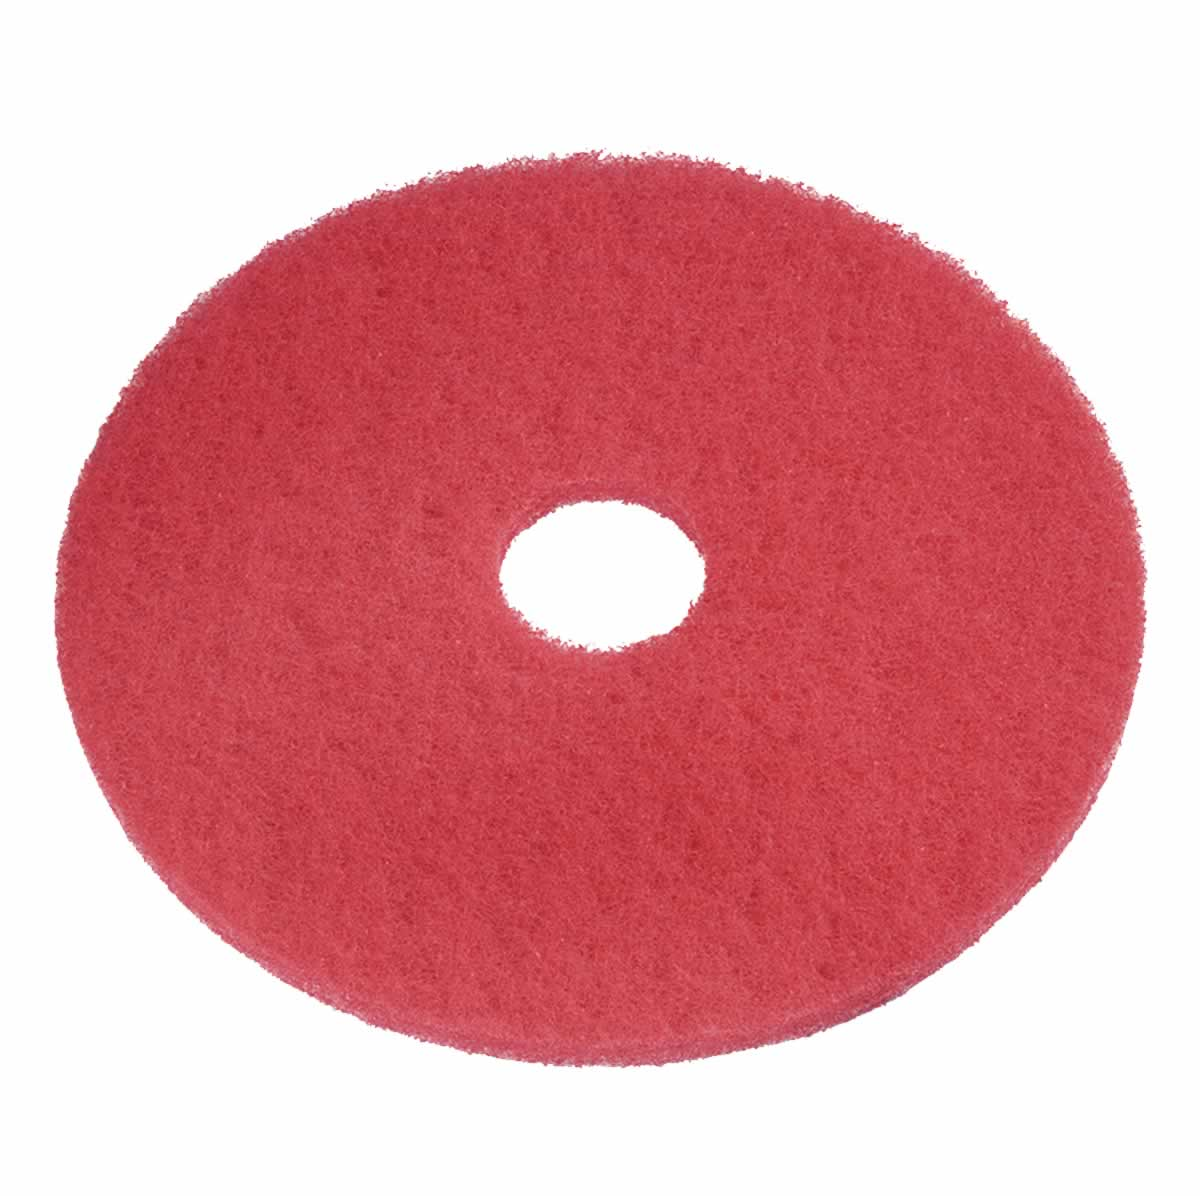 20-inch-Contract-RED-Floor-Pads--box-of-5-